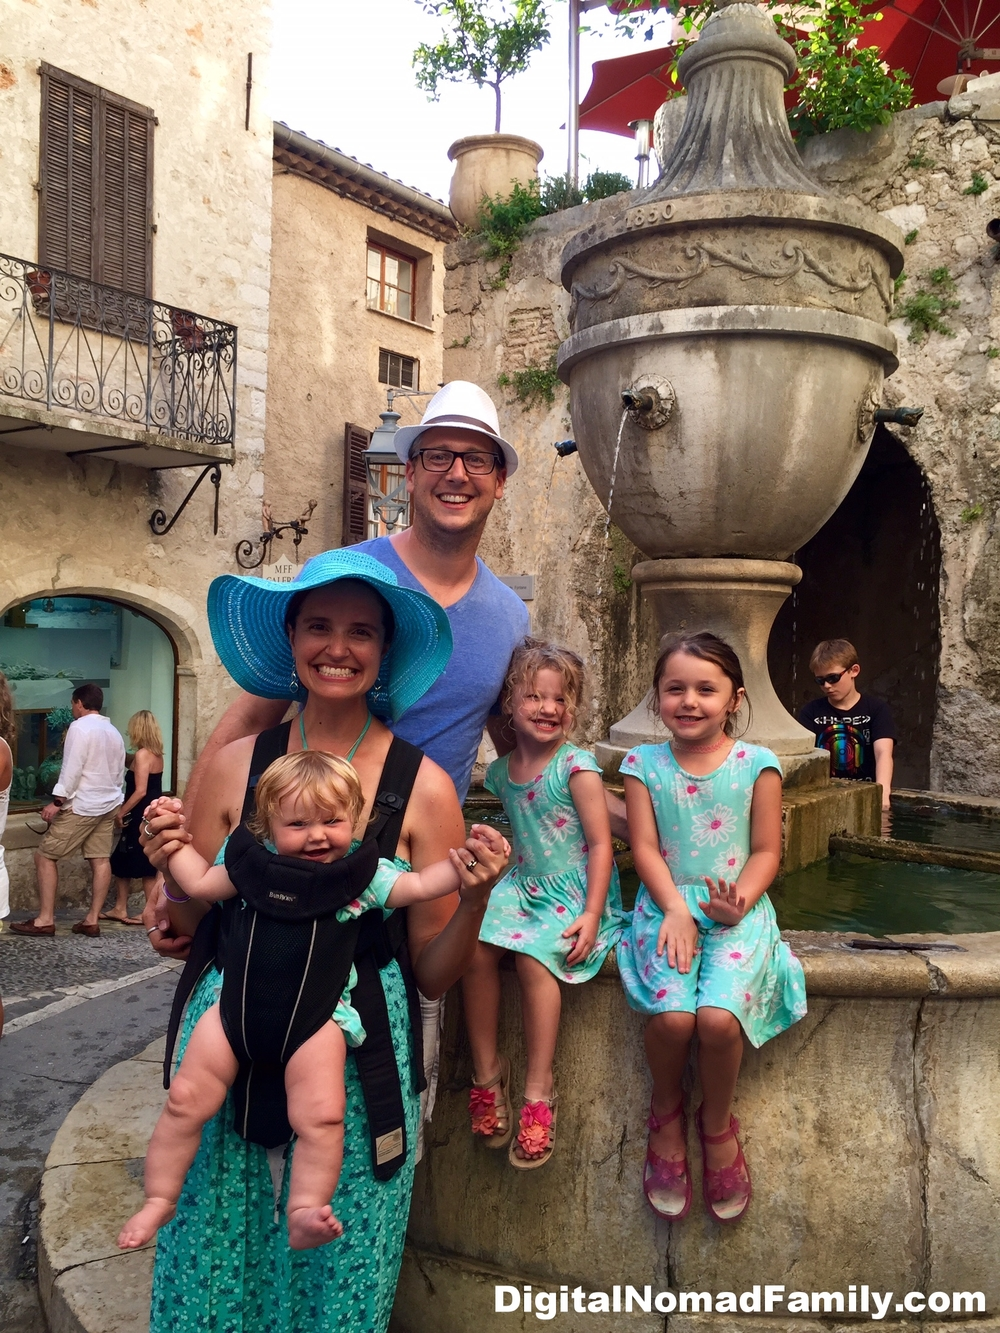 Our family had a delightful day in St. Paul-de-Vence!